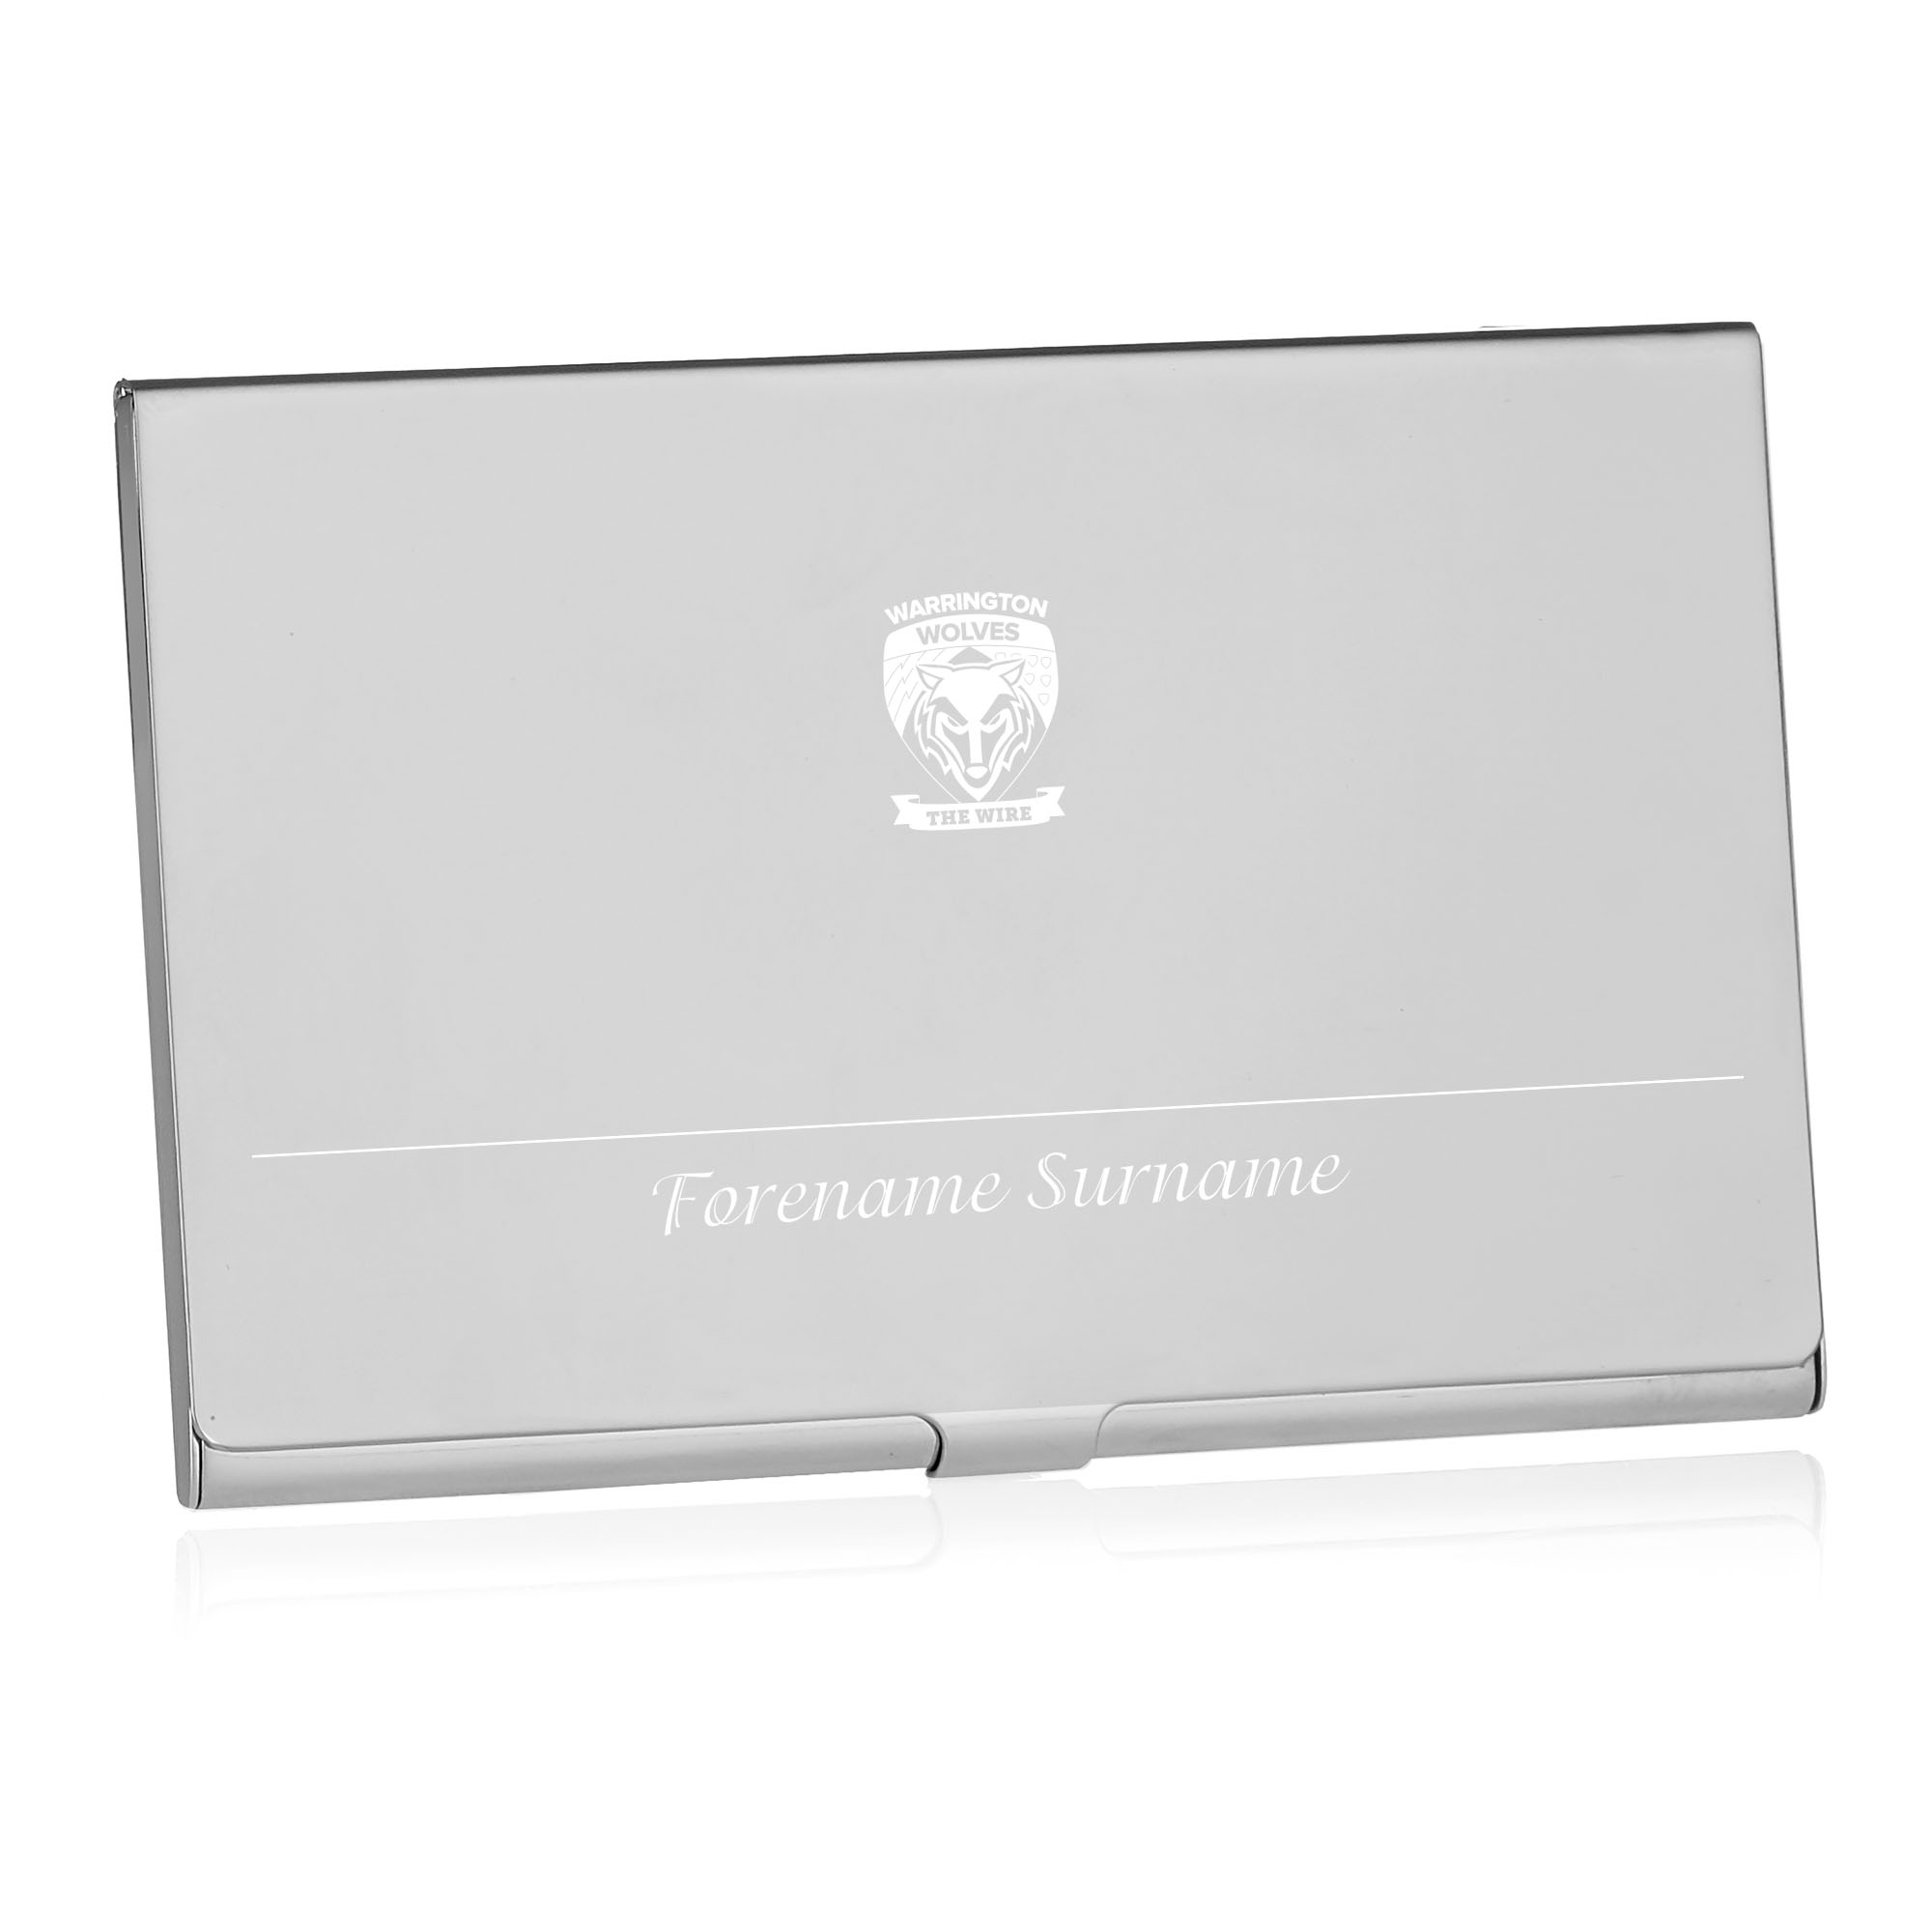 Warrington Wolves Executive Business Card Holder